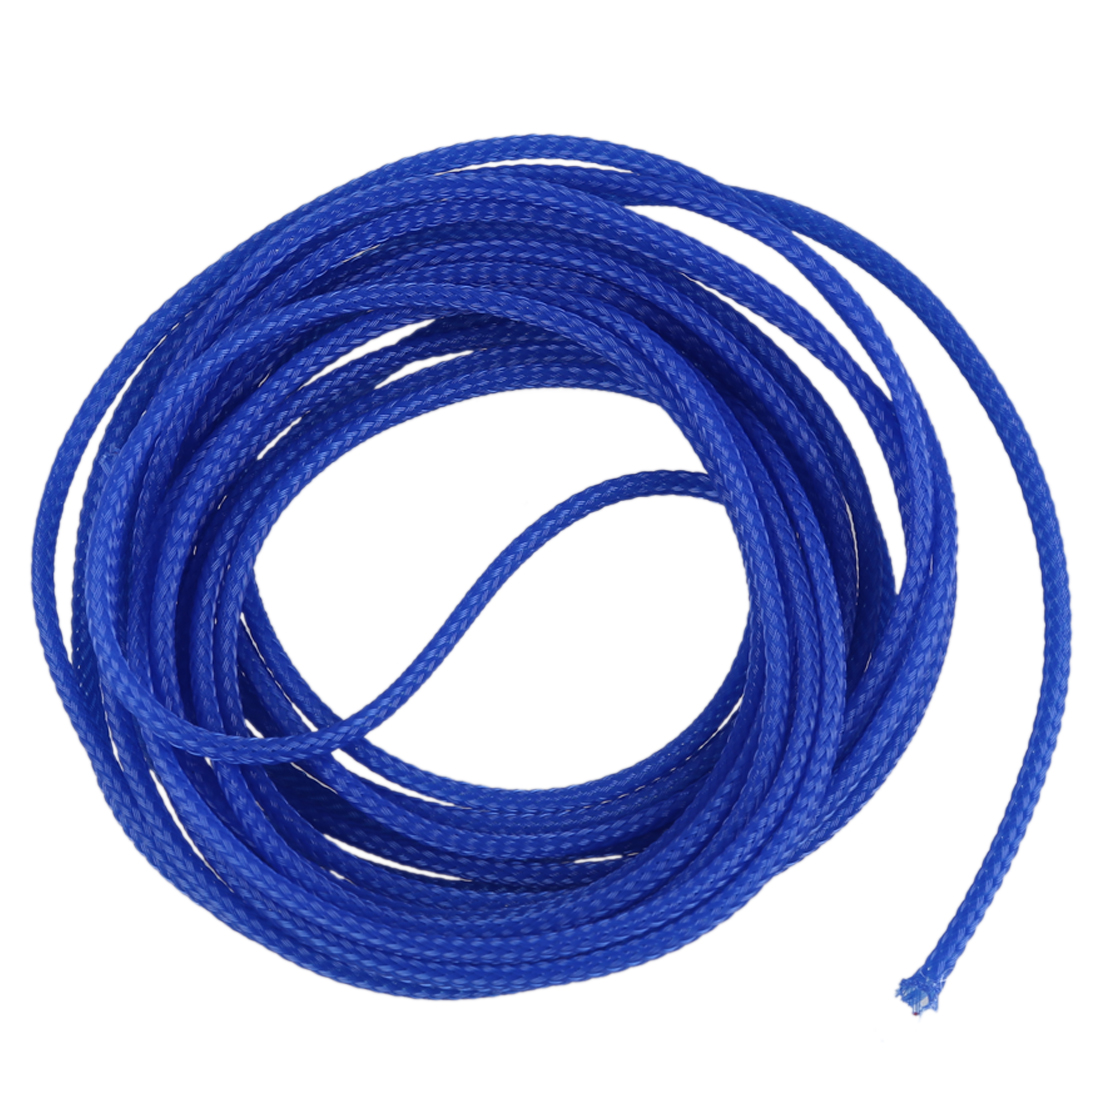 5M 4mm Expanding Braided Cable Wire Sheathing Sleeve Sleeving Harness Blue